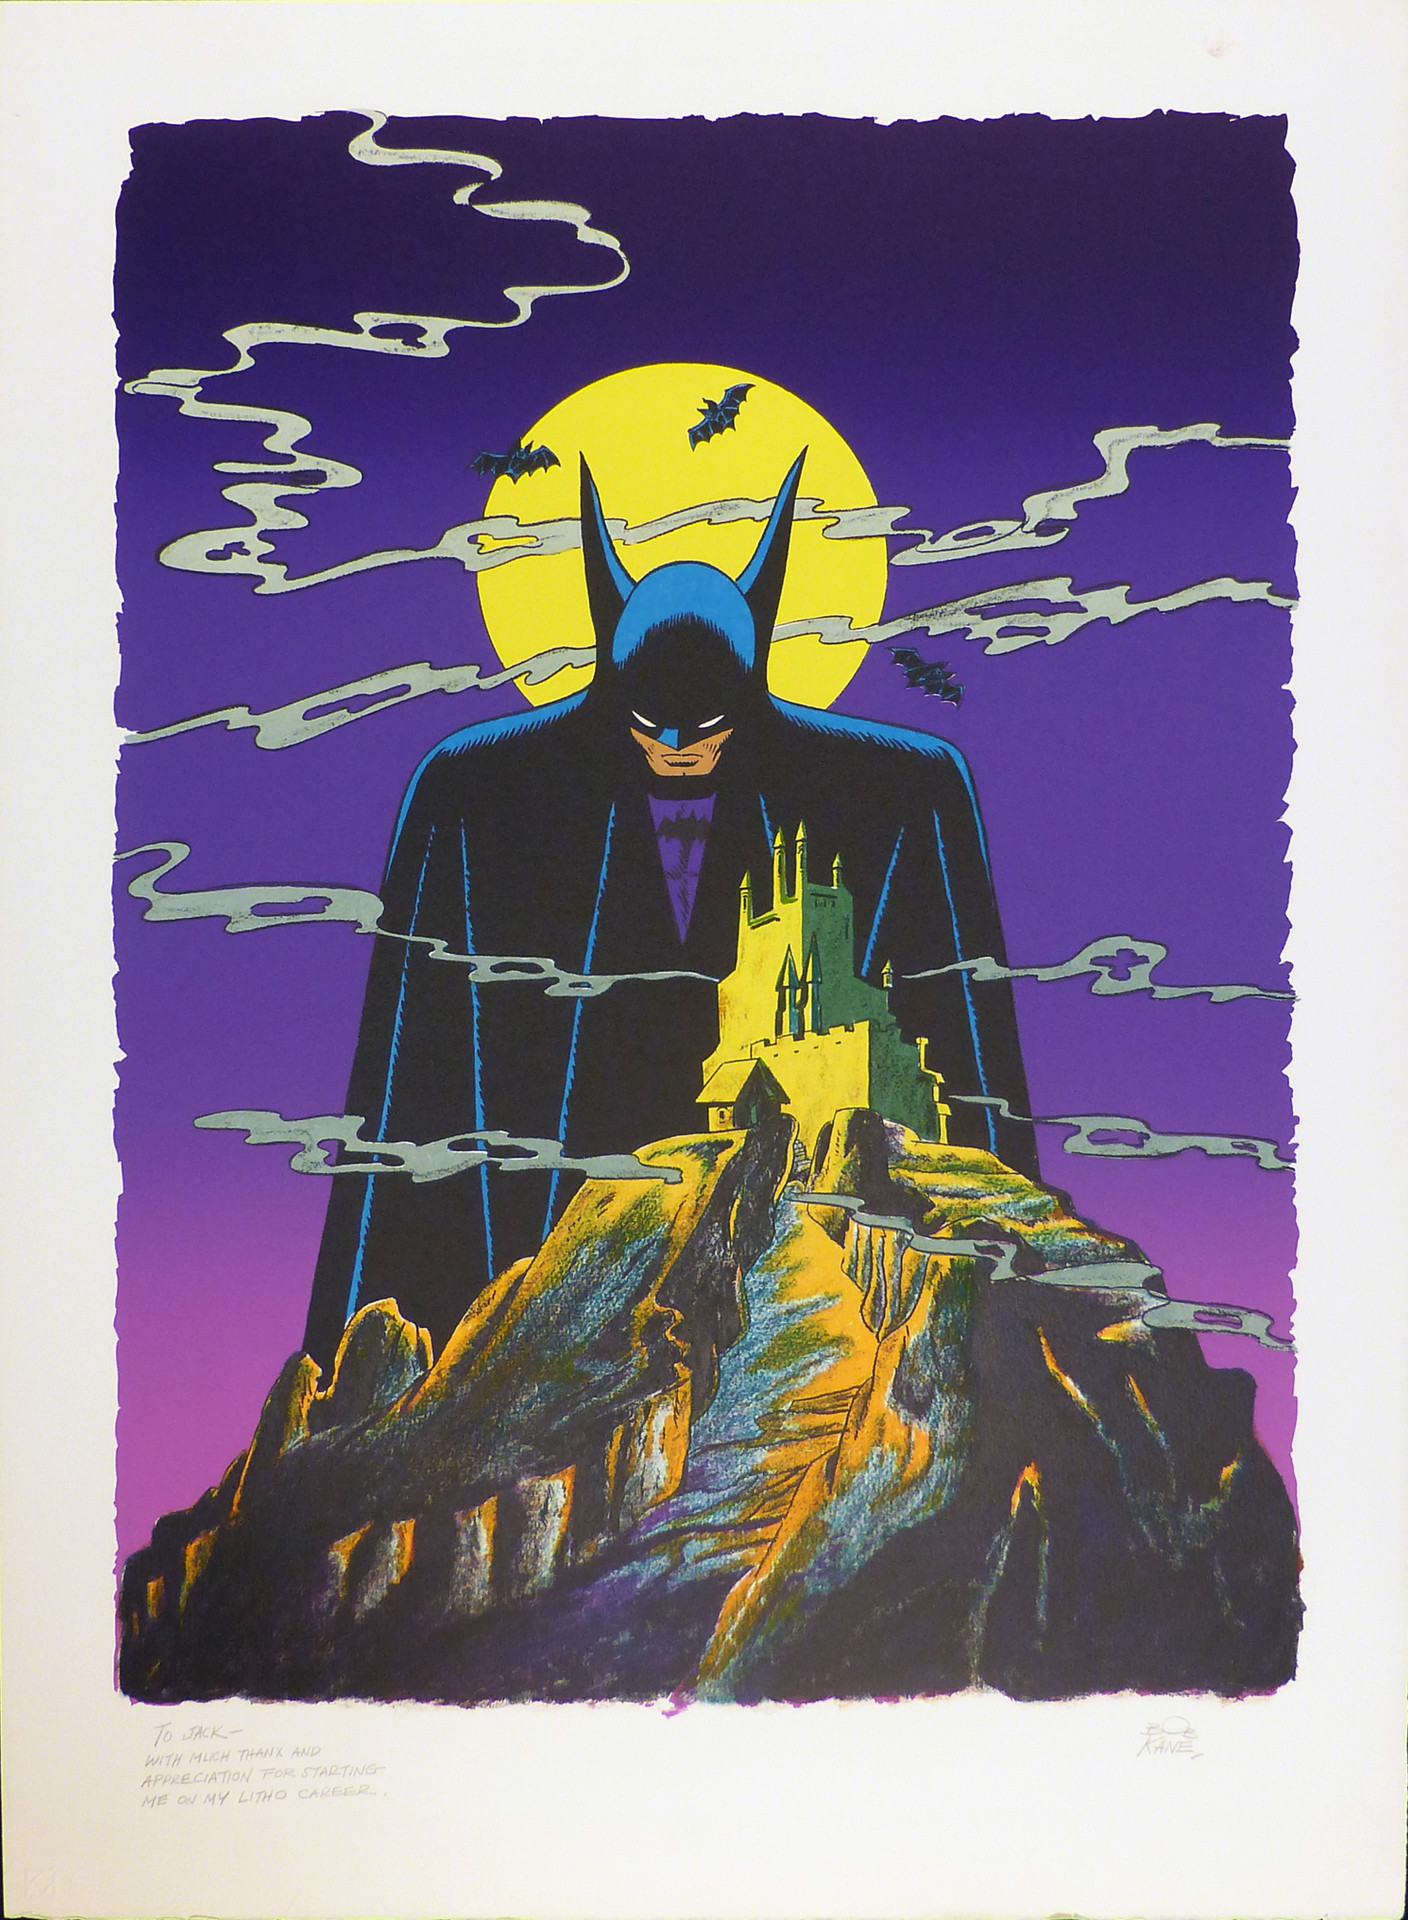 Batman 1978 Lithograph 32 1/2 x 23 1/2 in. Hand-signed and dedicated